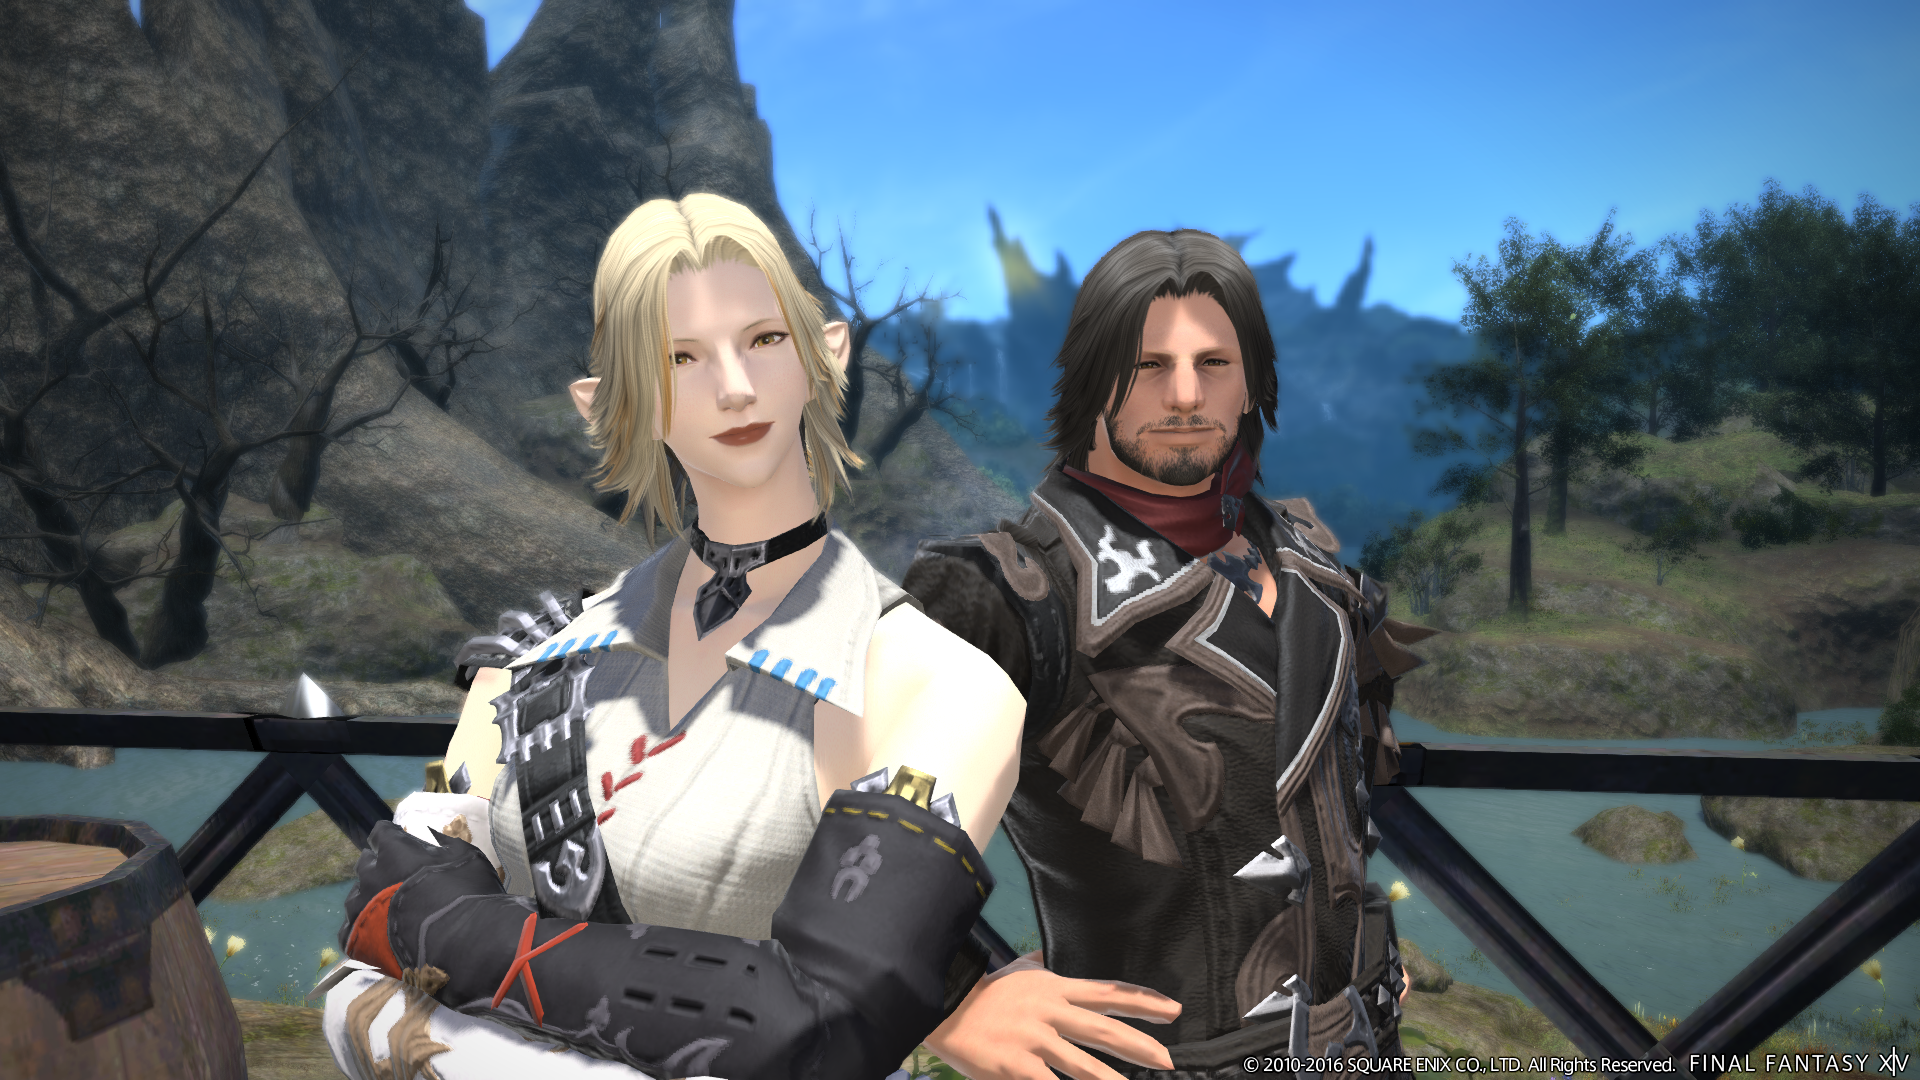 ffxivtips : final fantasy xiv screenshots detail the new content